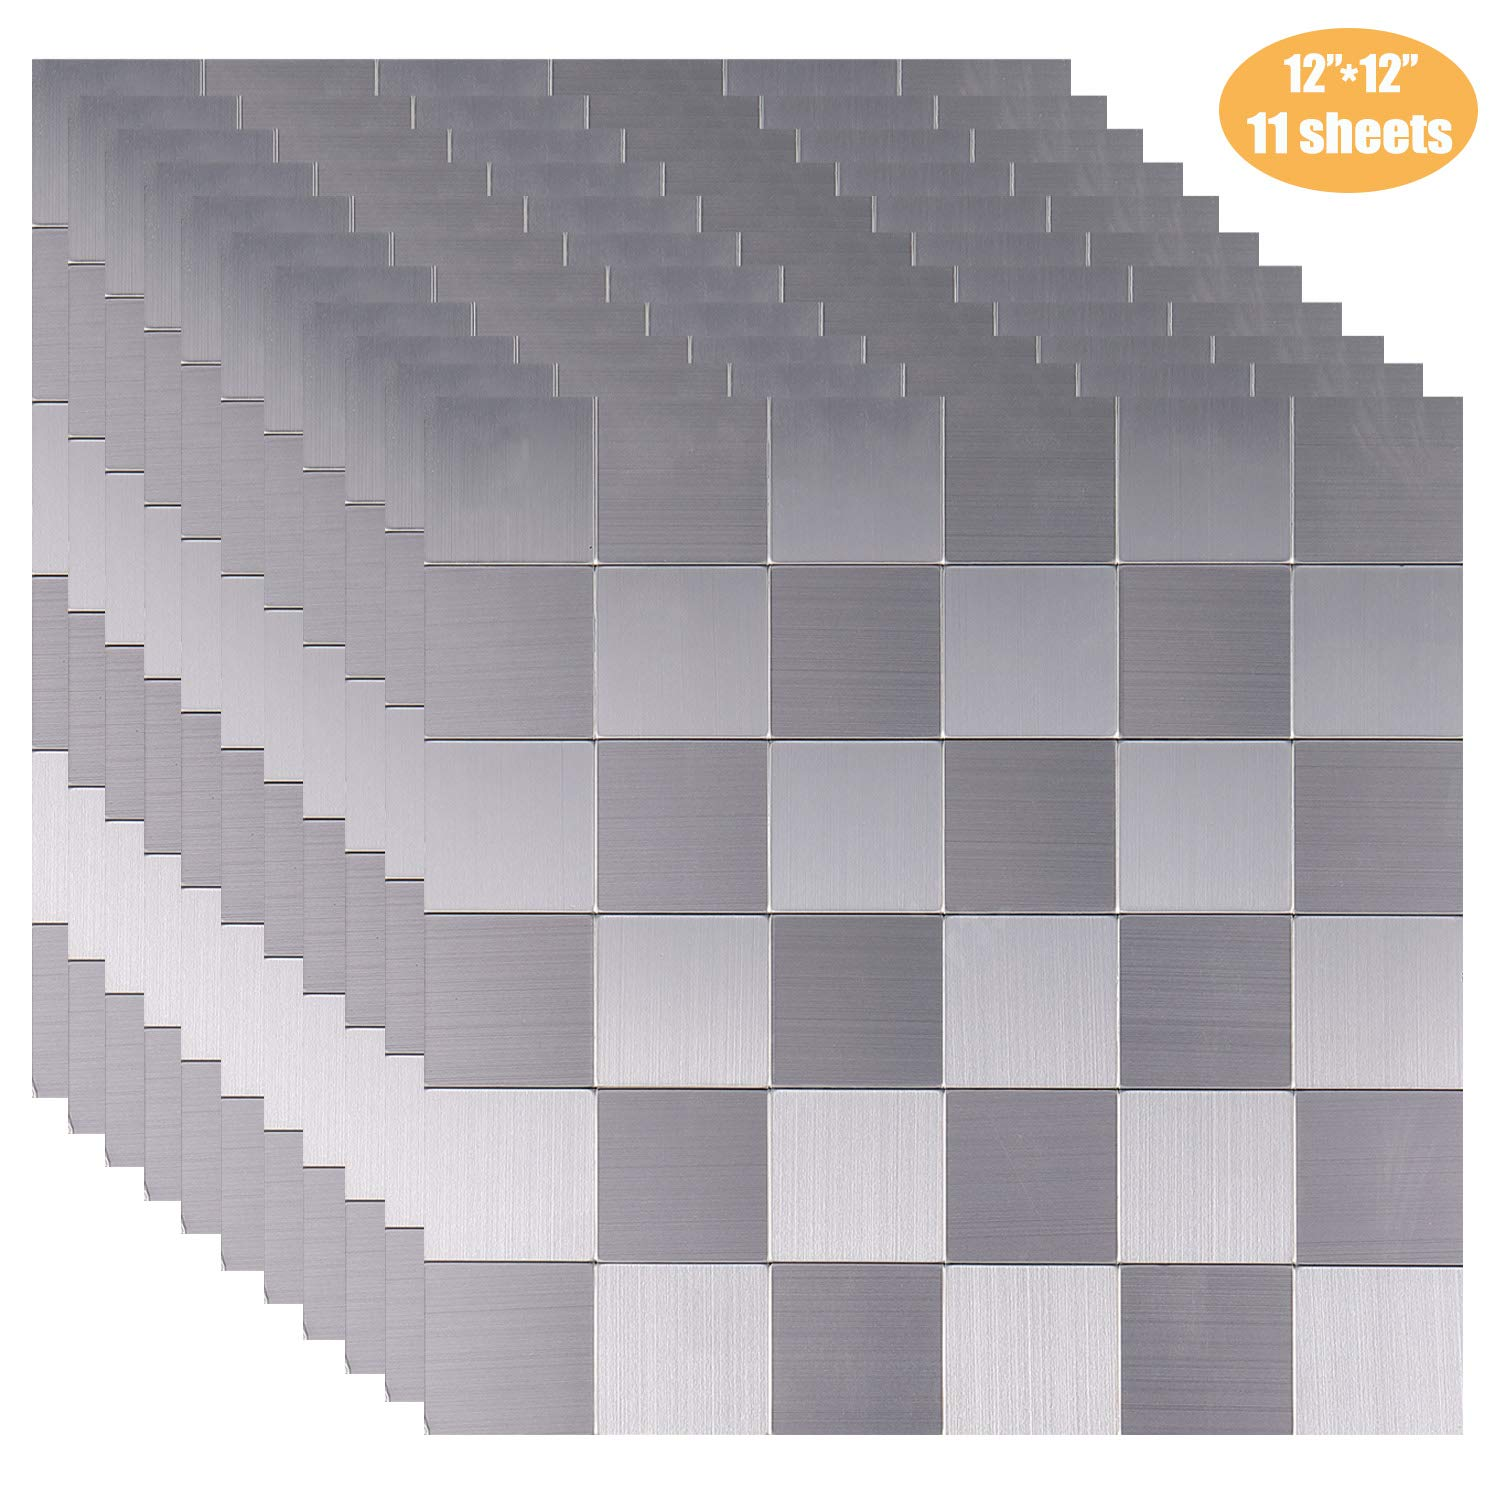 AxPower Peel and Stick Tile Backsplash Stainless Steel Metal Adhesive Kitchen Wall Tile 12'' x 12'' 11 Sheets /9 Square Feet/1 Square Meter